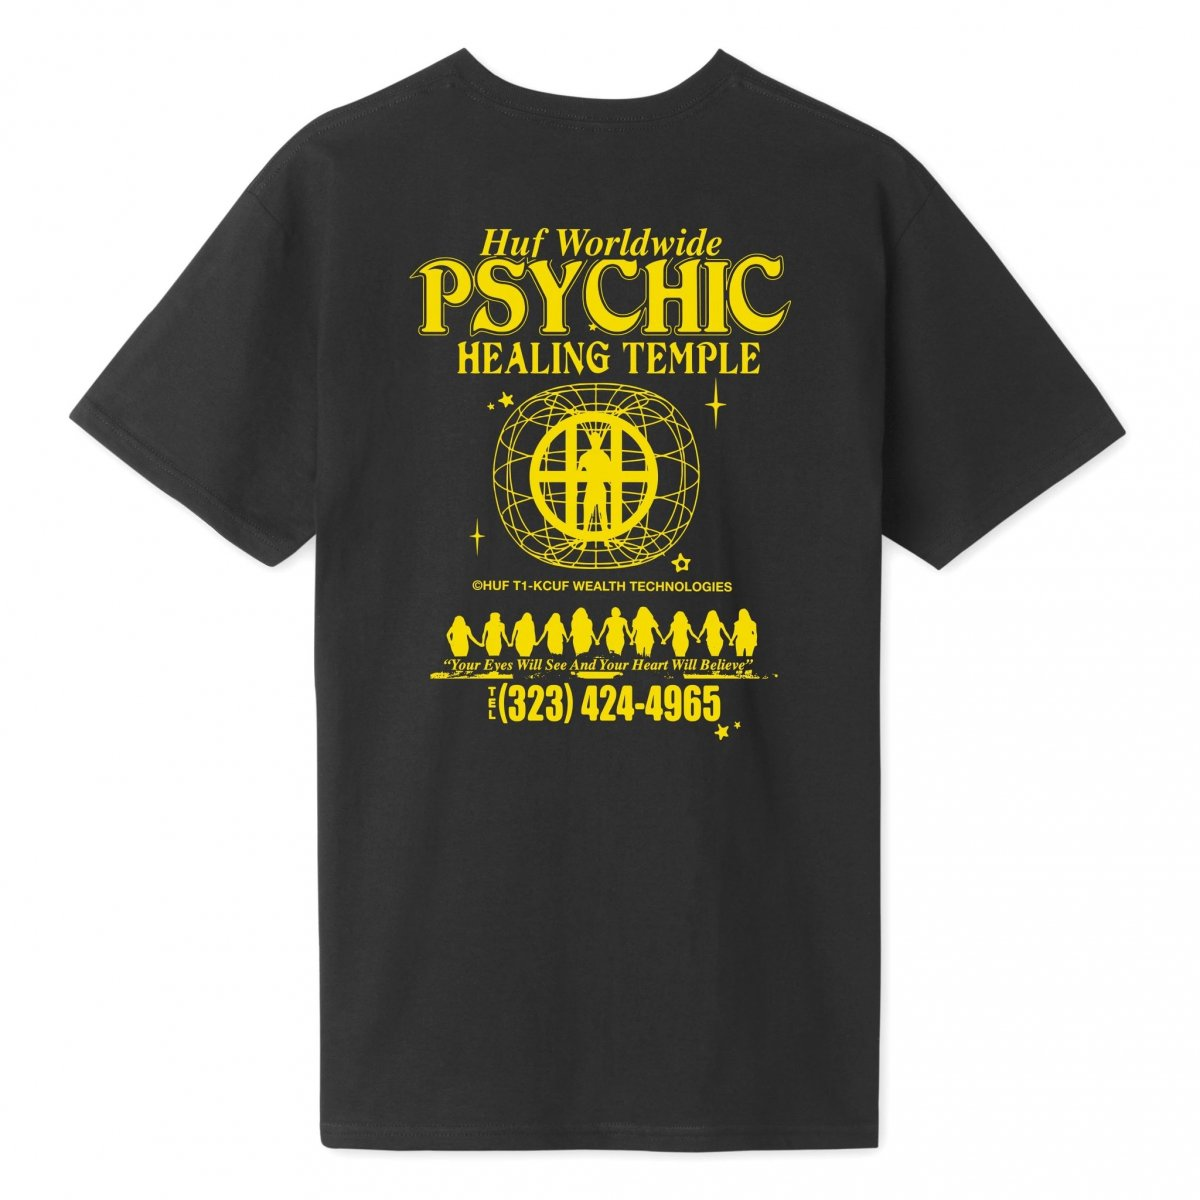 Huf T-Shirt Psychic Temple_2